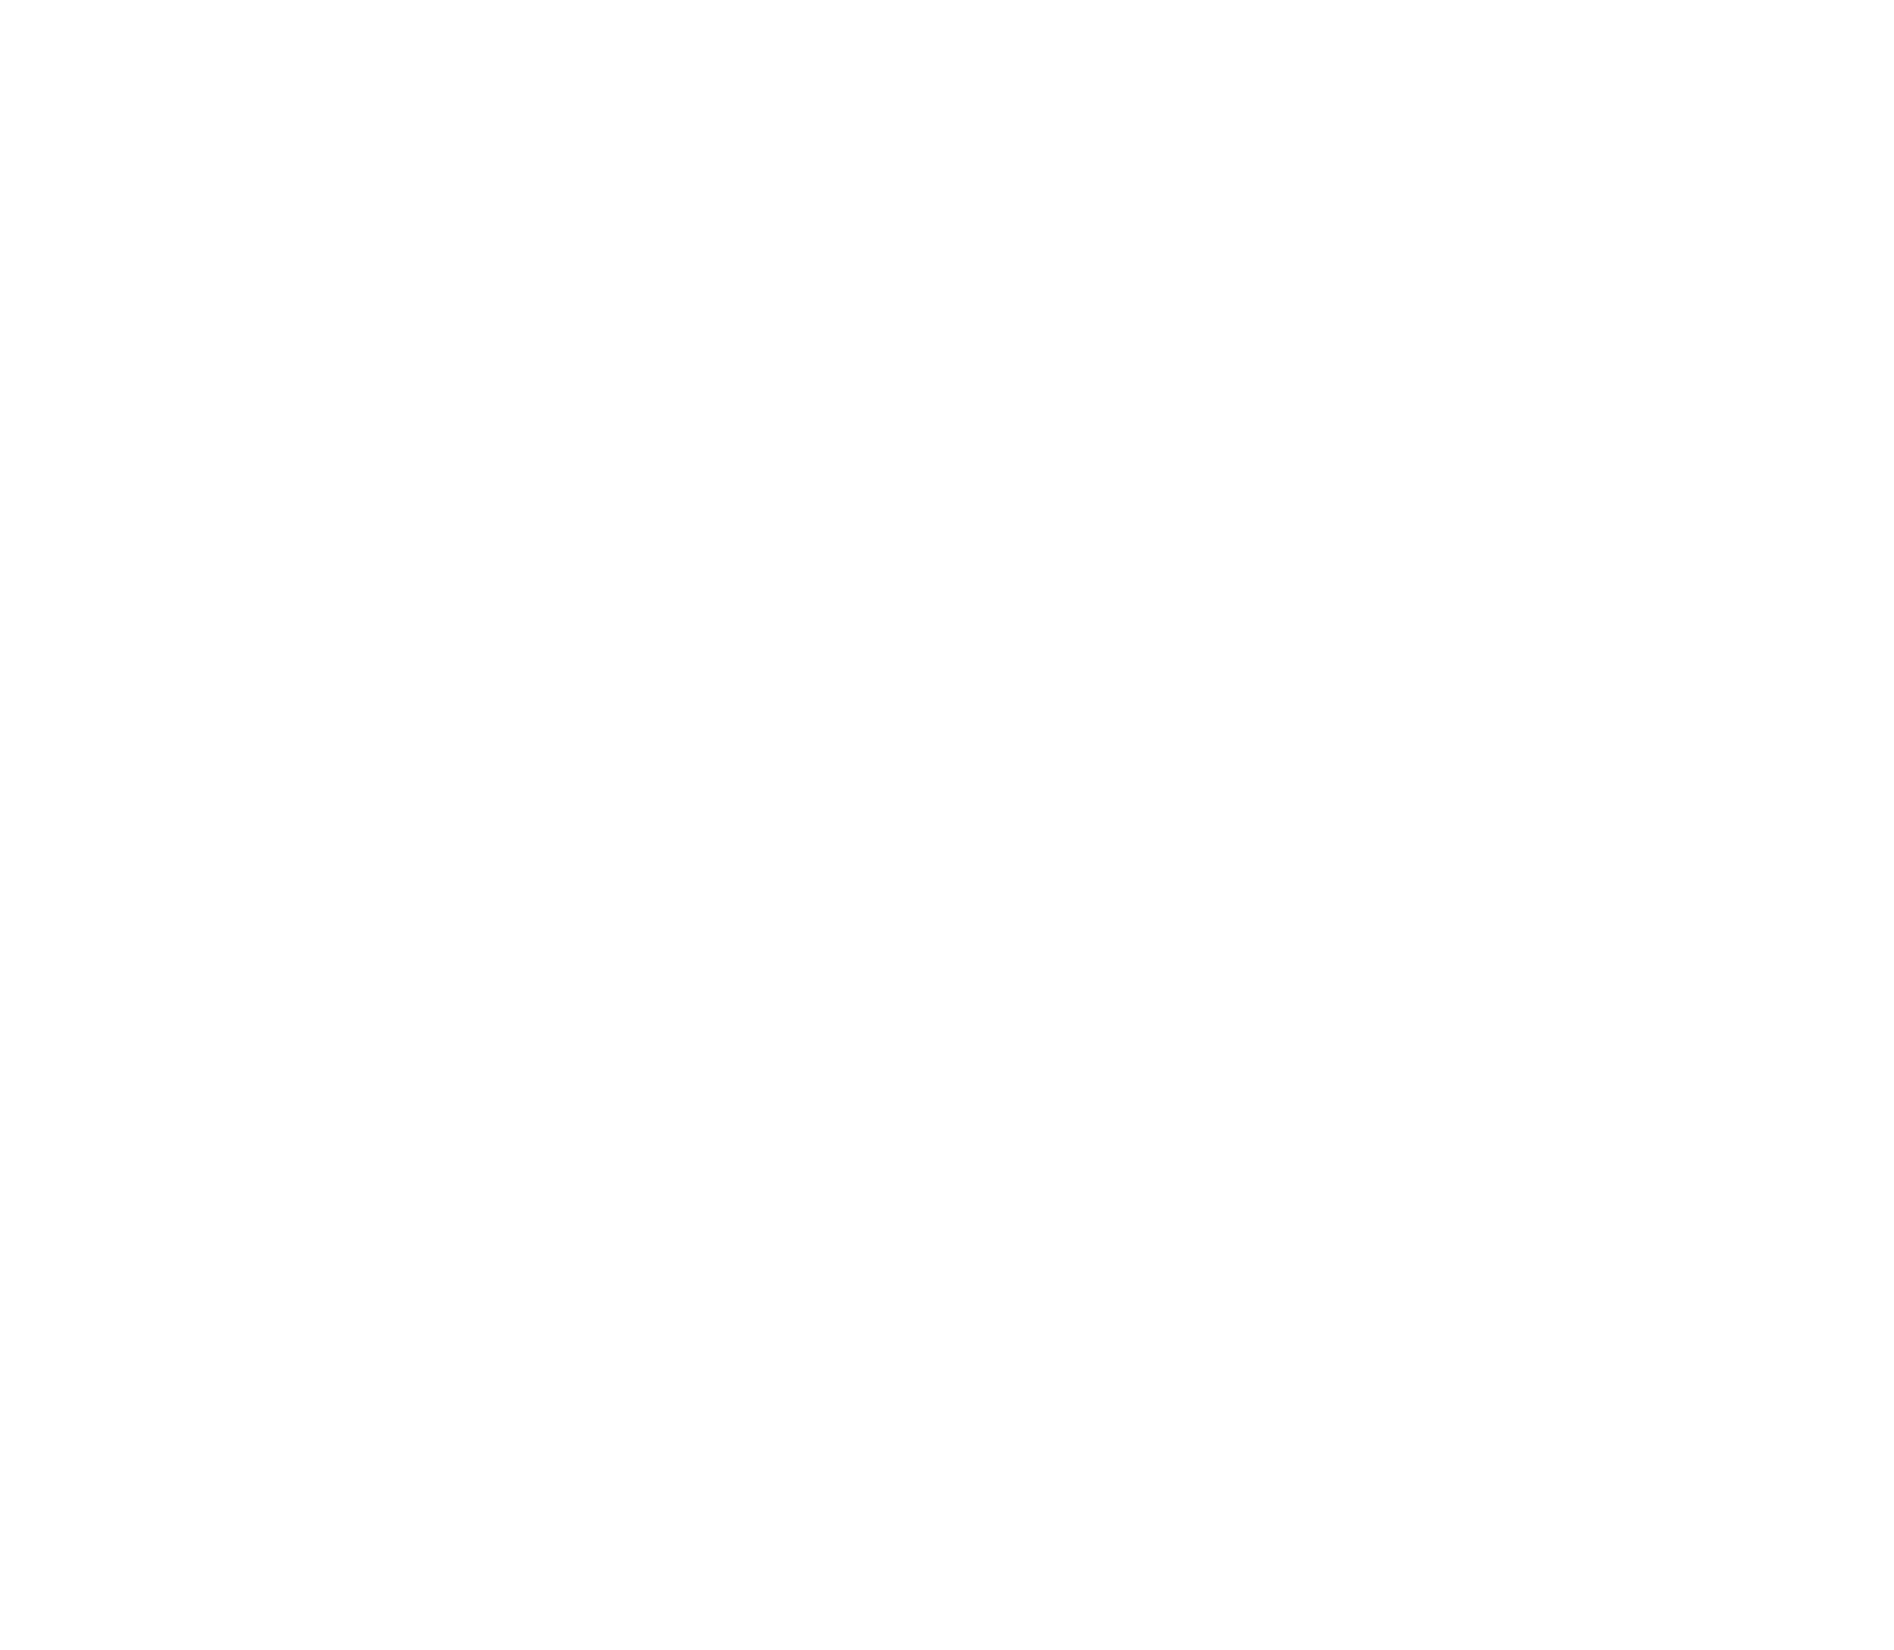 Welcome to Severn Runner Info!